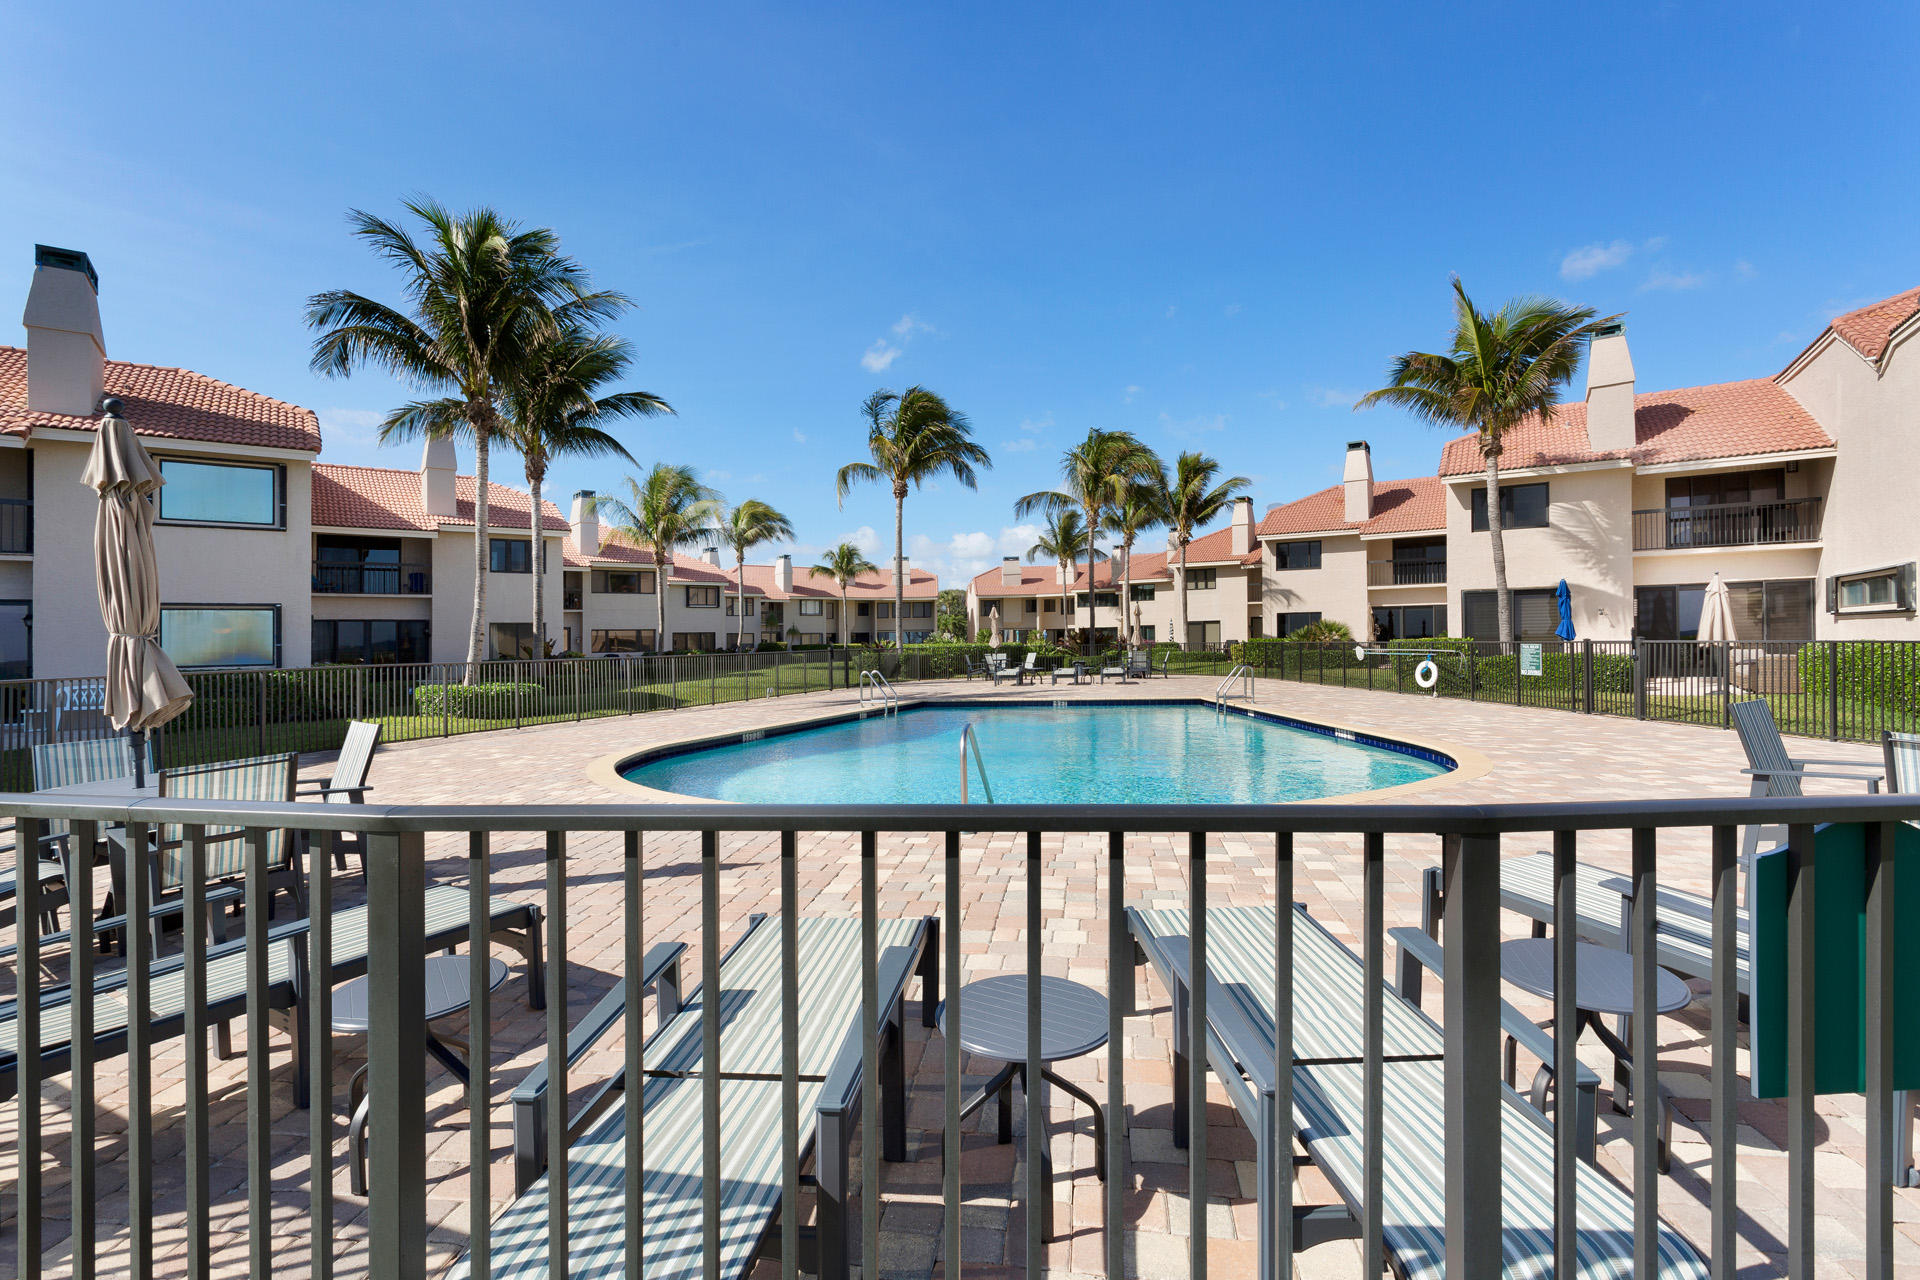 DUNES OF OCEAN RIDGE REALTOR